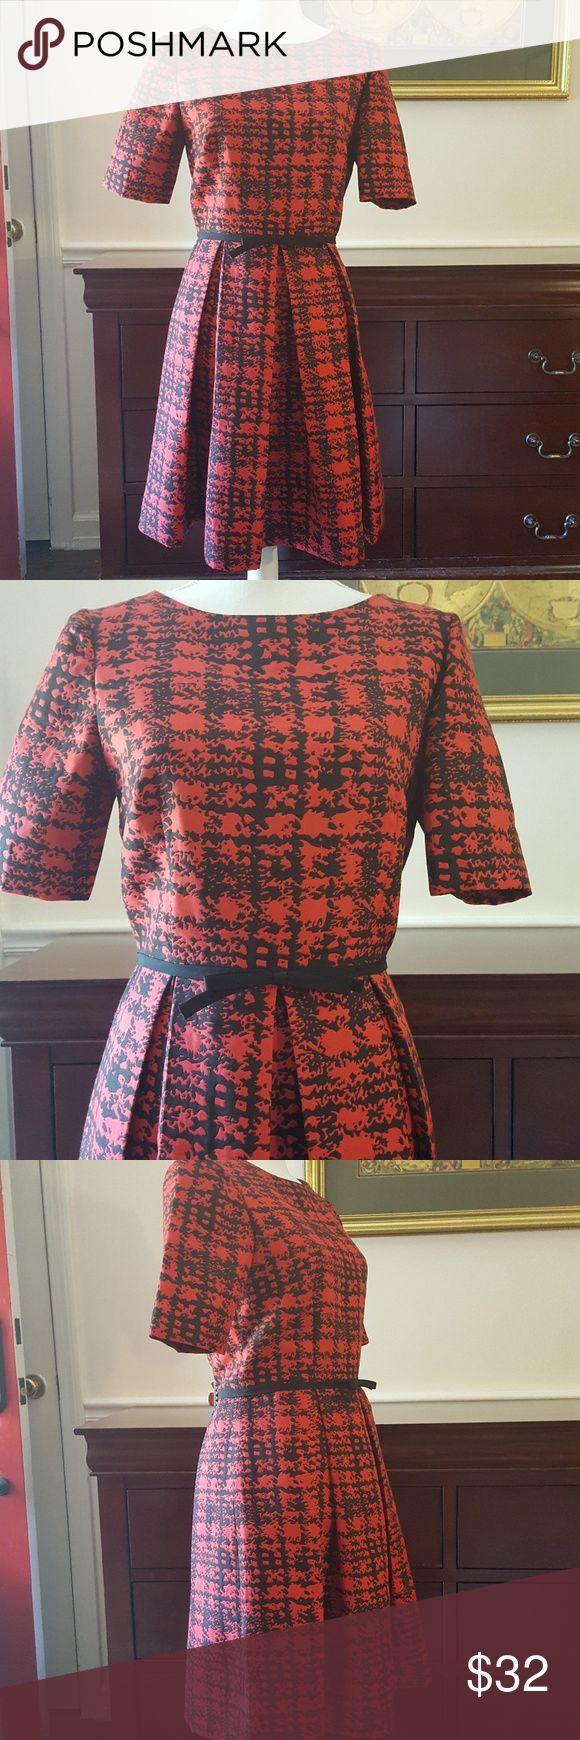 """Black and Red Fit N Flare Dress Just Taylor SZ 8 So pretty. Black and Red Dress with slim bow accent at waist. Back zip. Short sleeves. Excellent Condition. Approximate Measurements: Armpit to Armpit 18"""" Waist 14.5"""" Across  Hip 18"""" Across  Length 36"""" Just Taylor Dresses"""